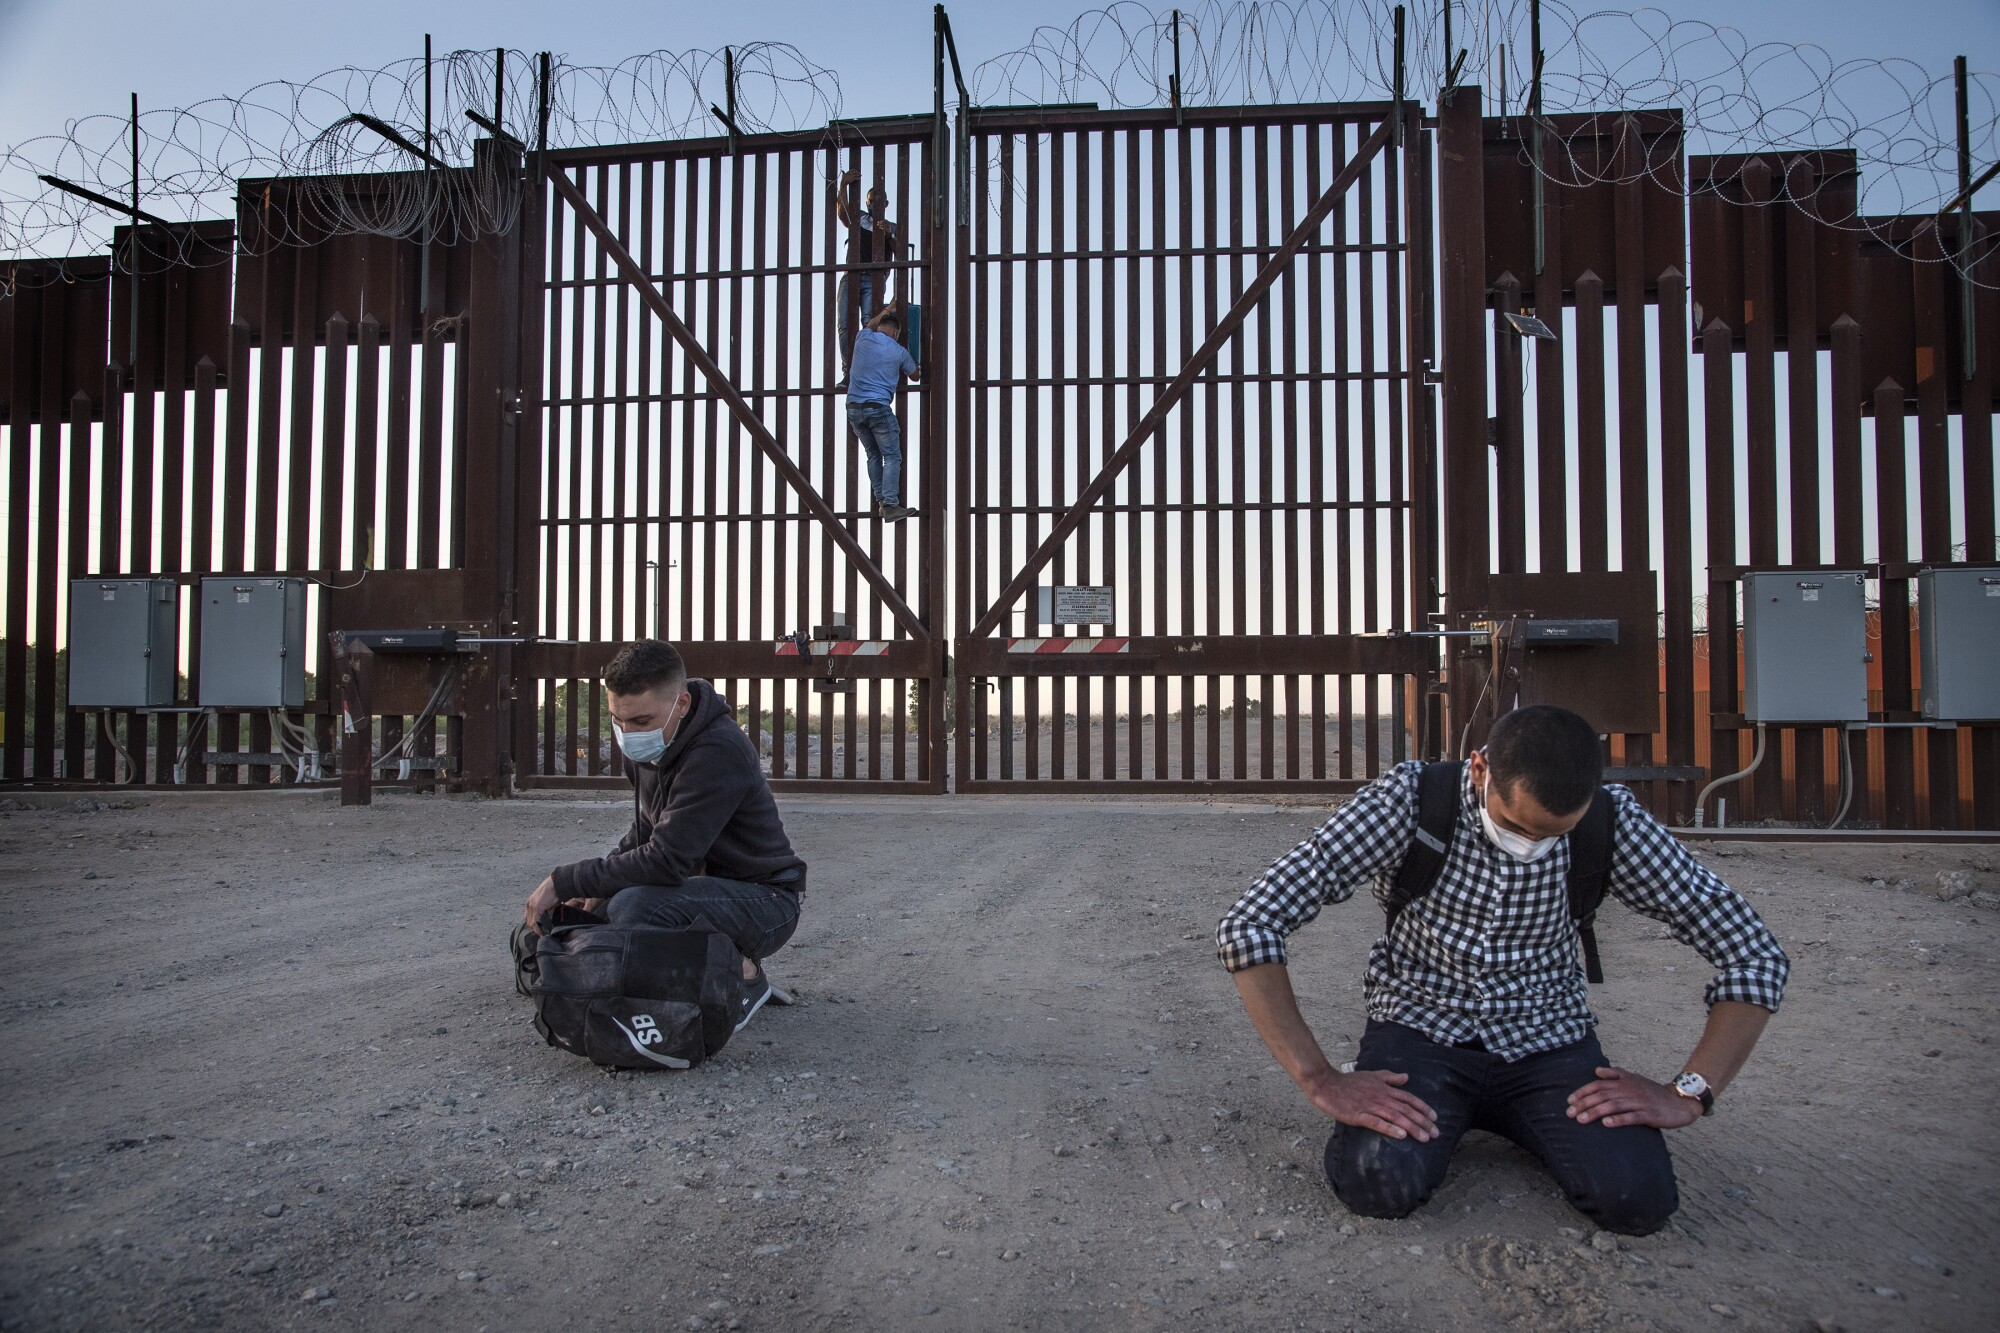 Two Cuban nationals fall to their knees in prayer moments after scaling the U.S./Mexico border fence in San Luis, Arizona